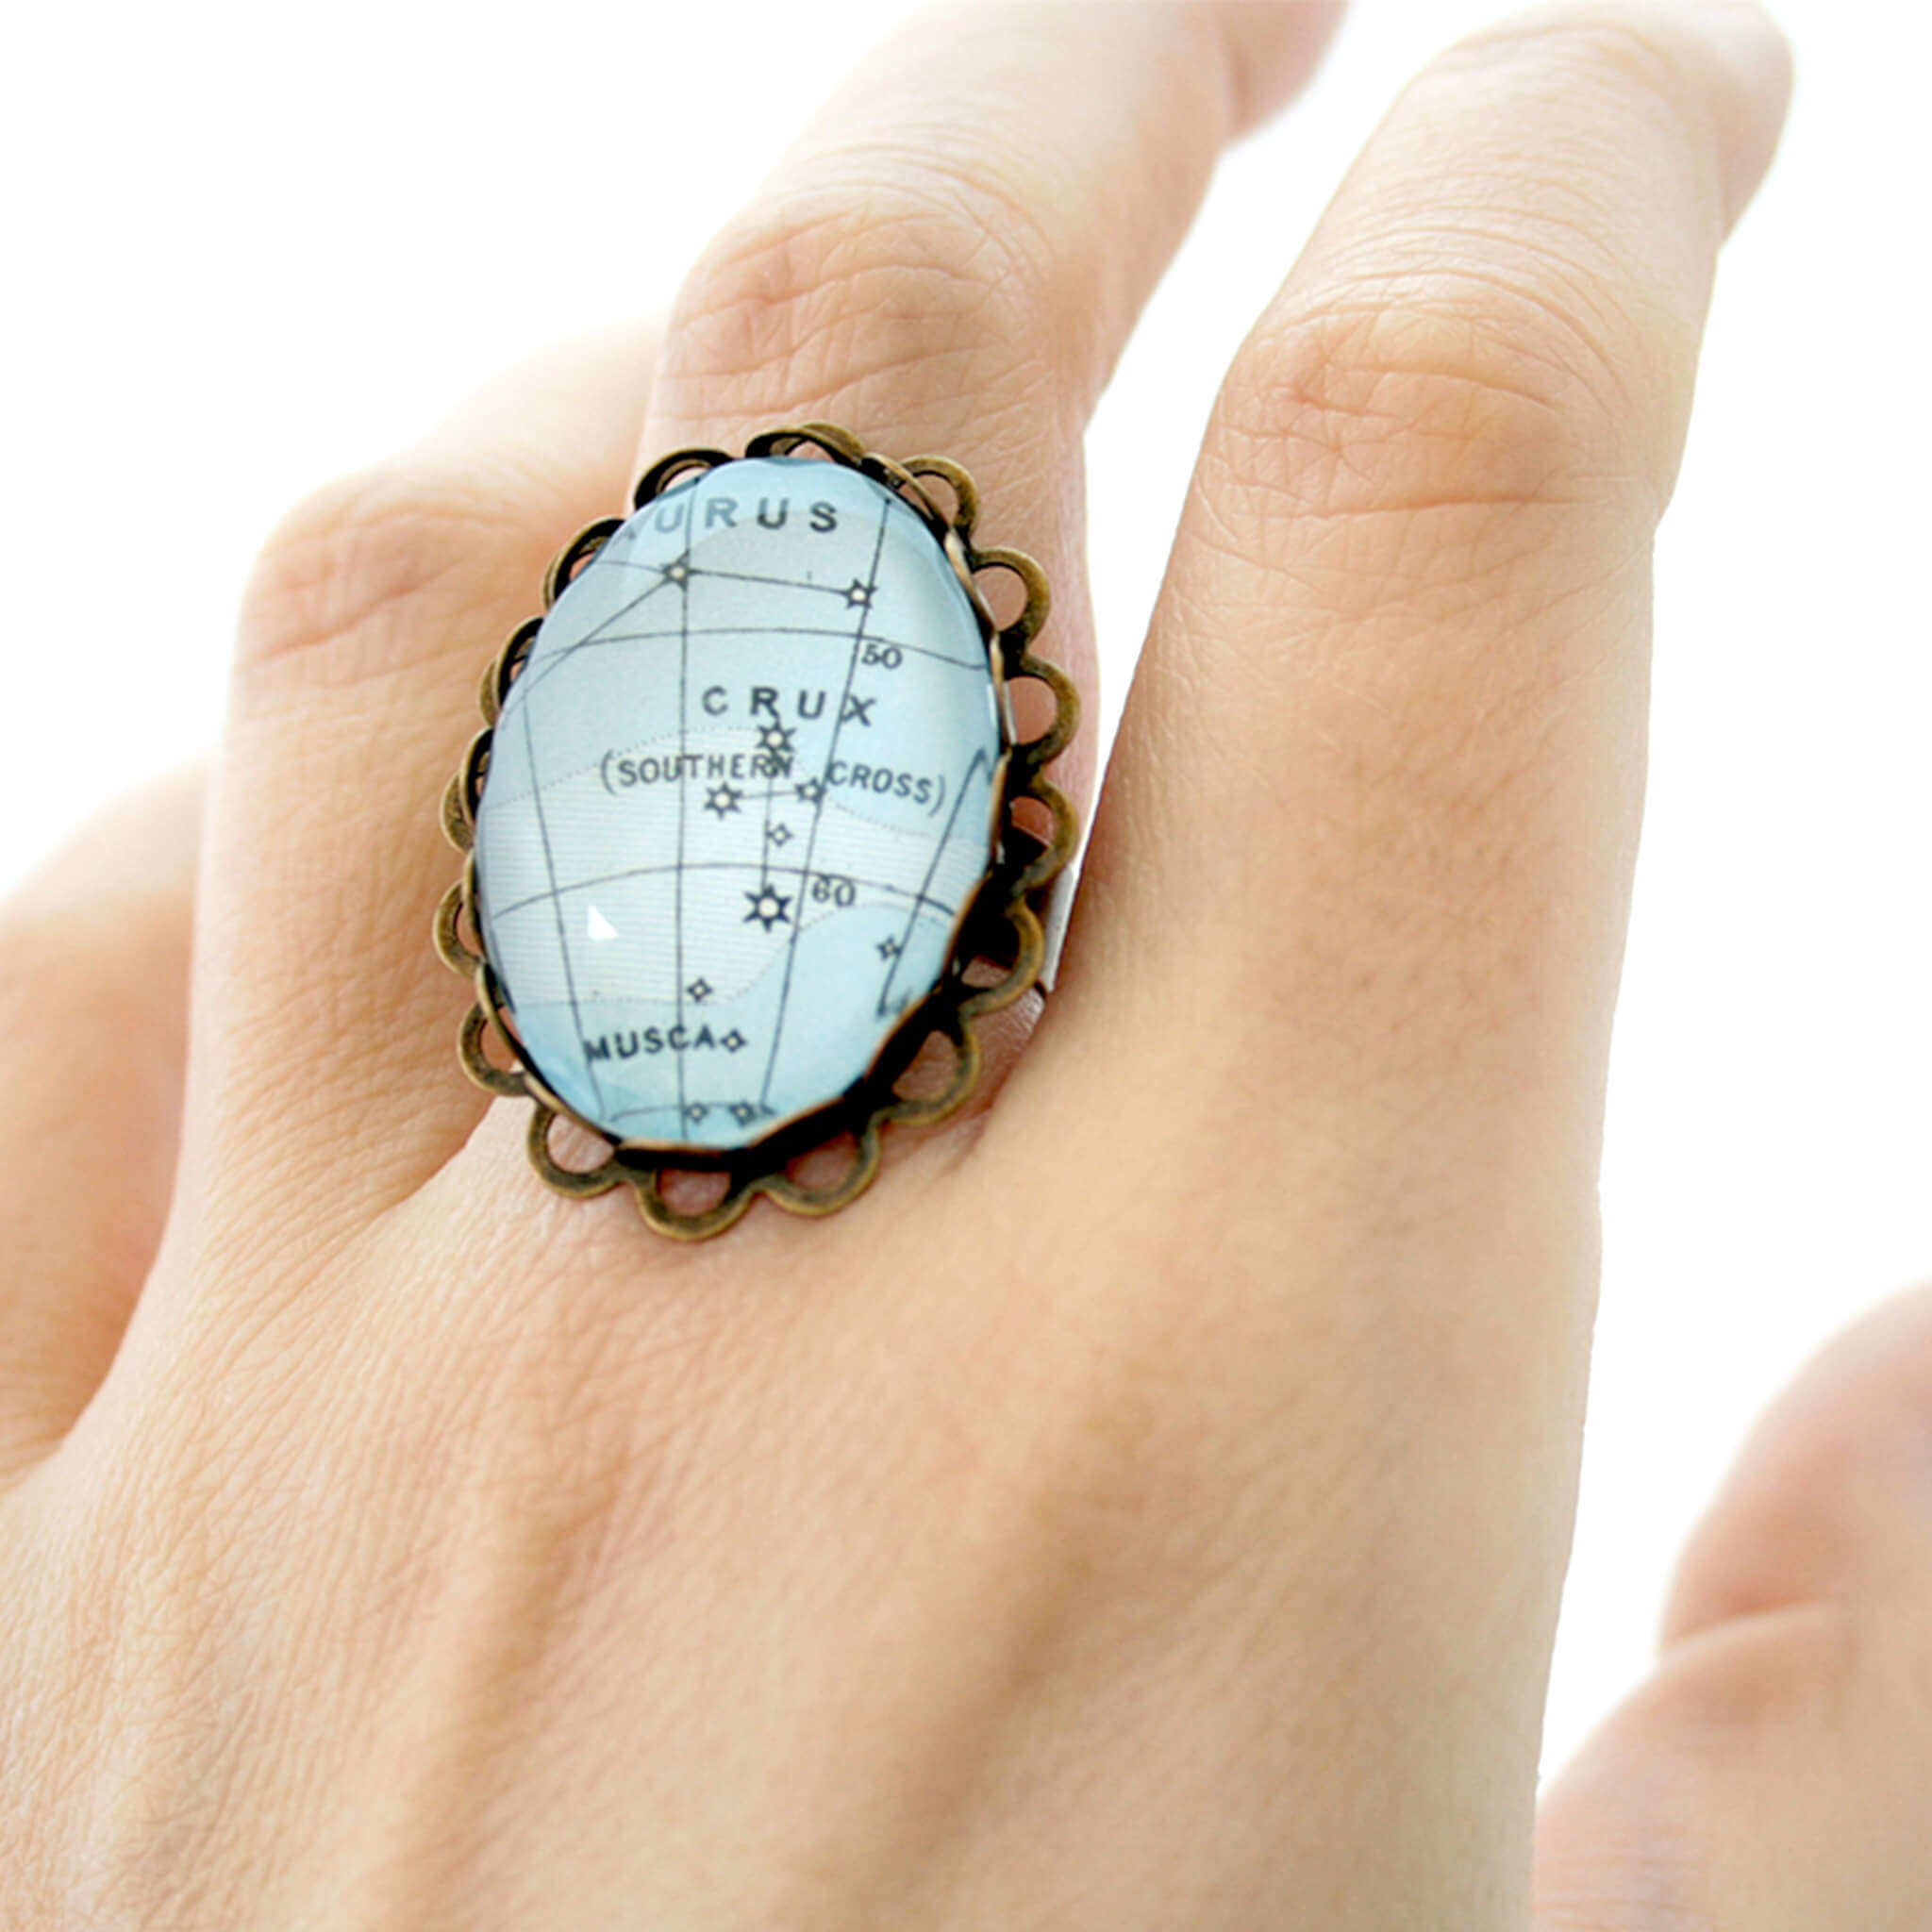 Oval, bronze star constellation ring in blue color